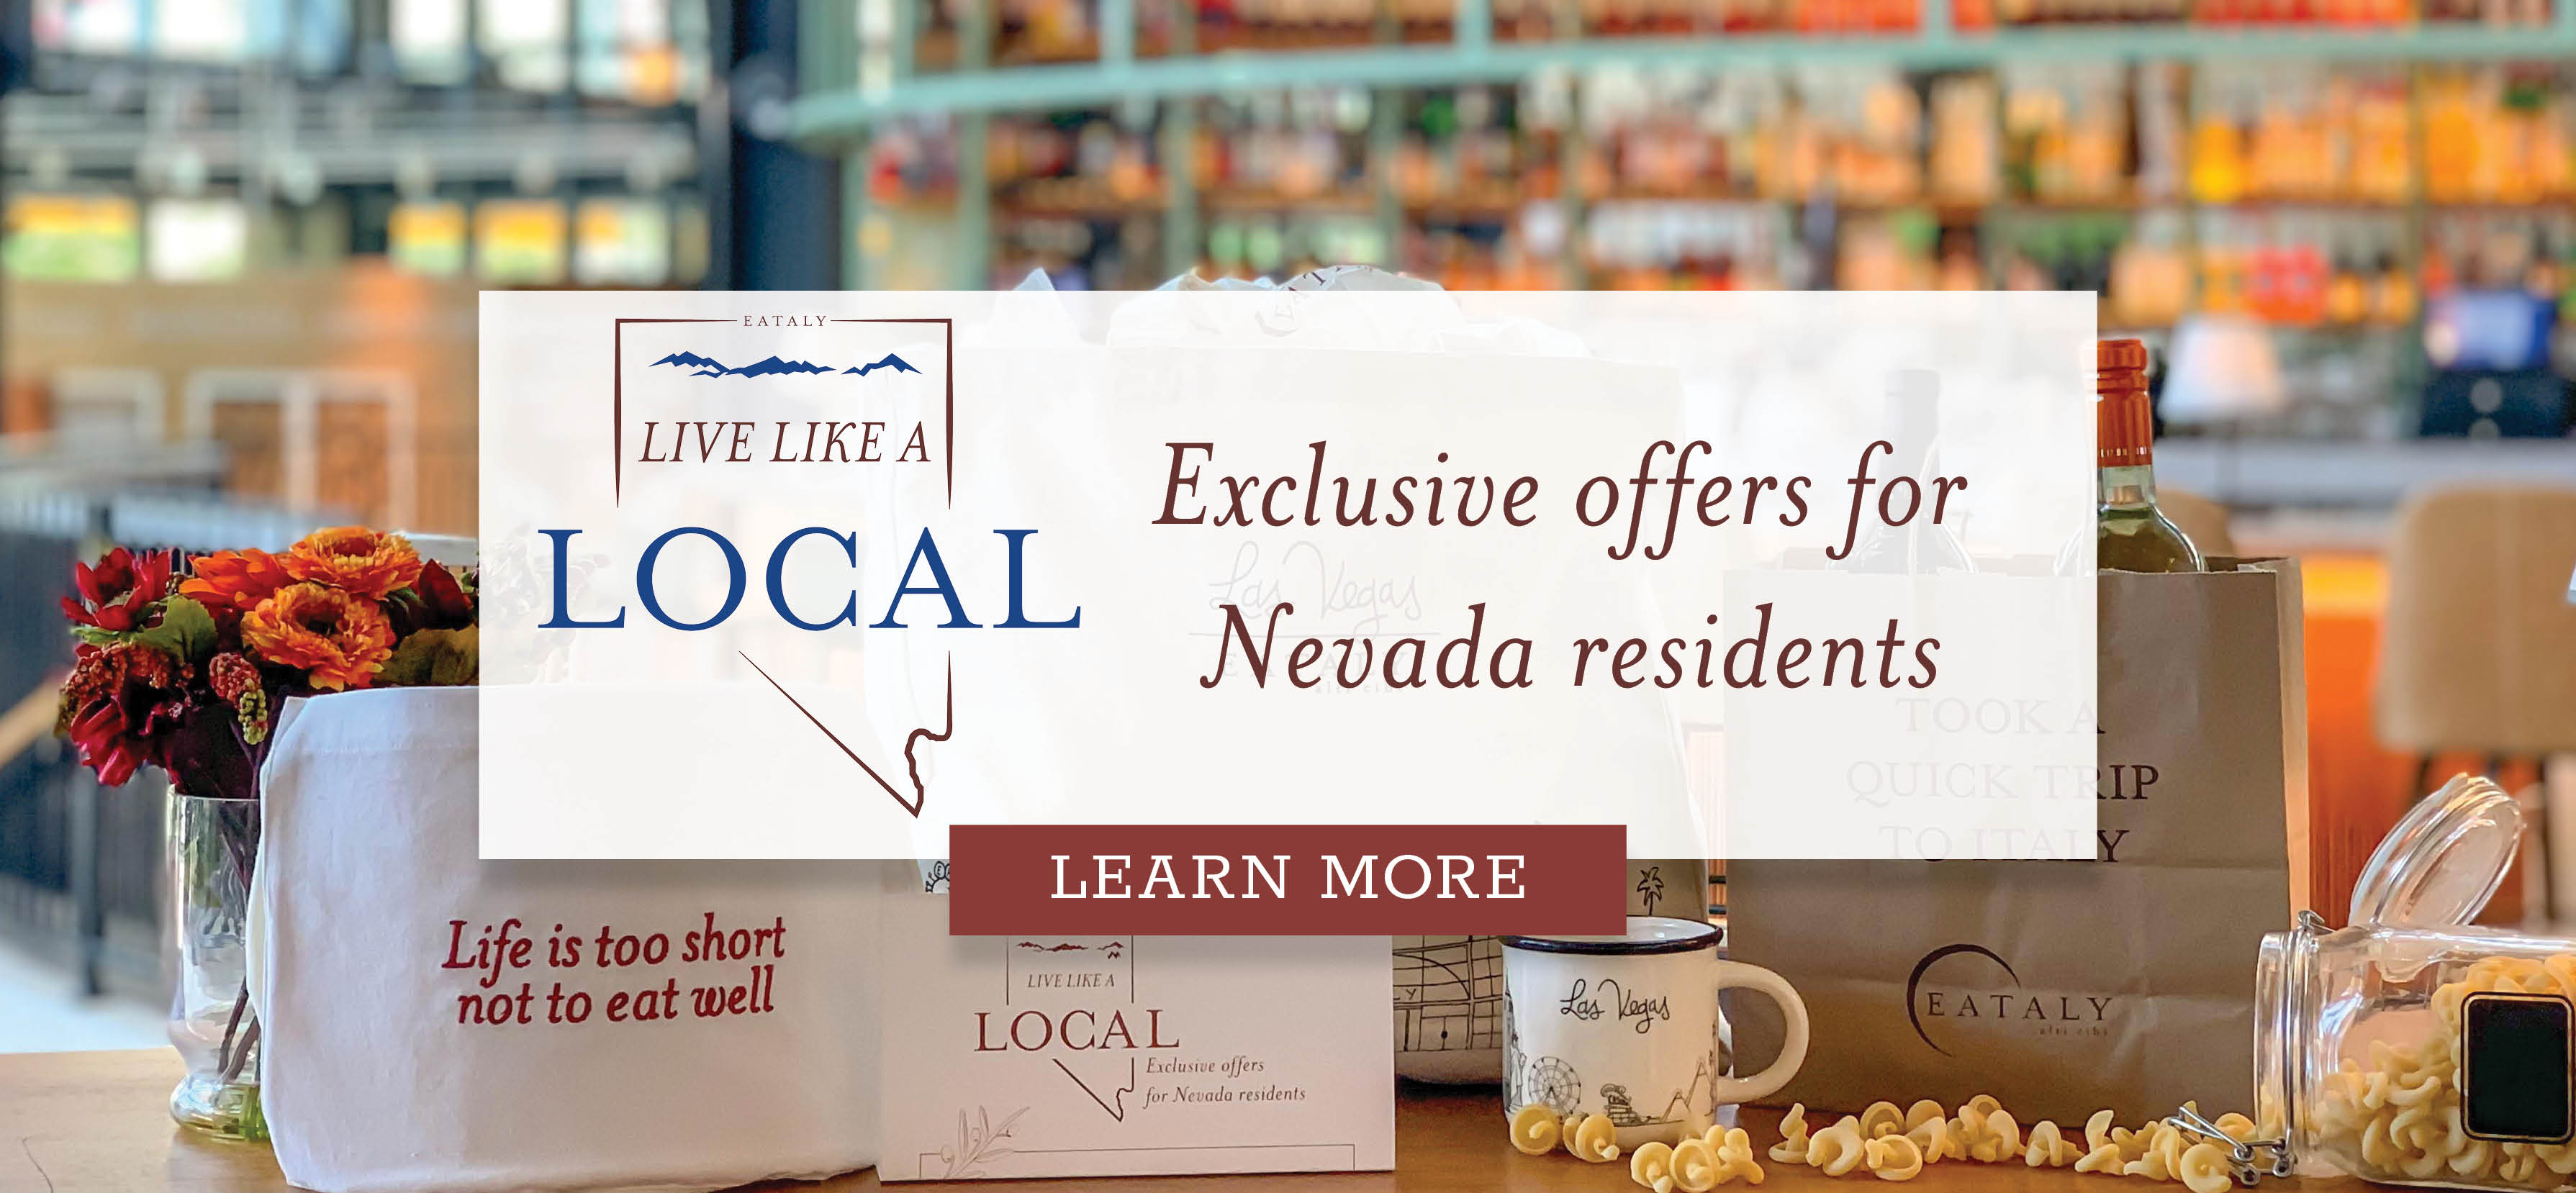 Live Like a Local at Eataly Las Vegas